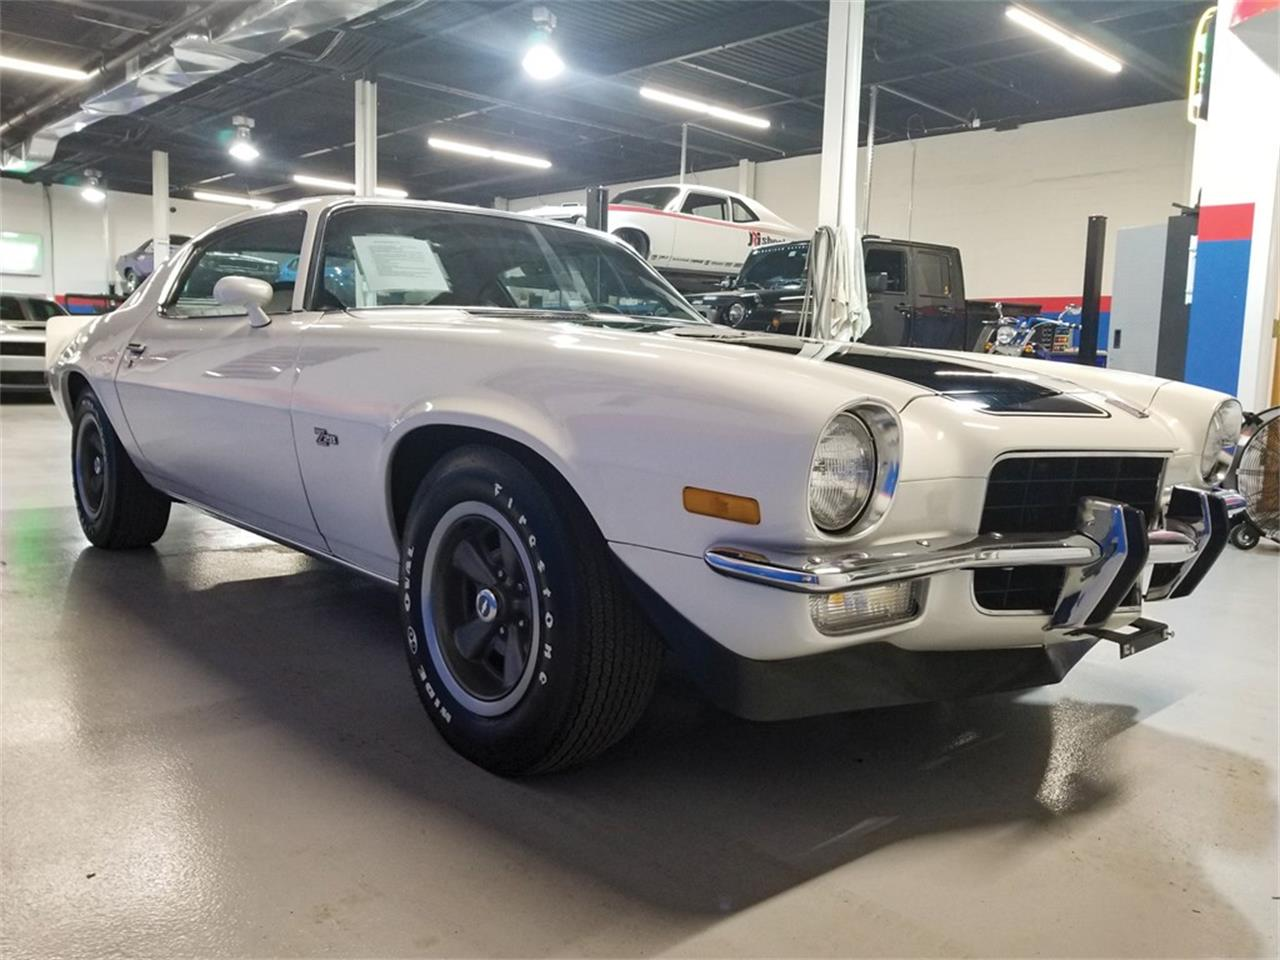 1973 Chevrolet Camaro Z28 for sale in Fort Lauderdale, FL